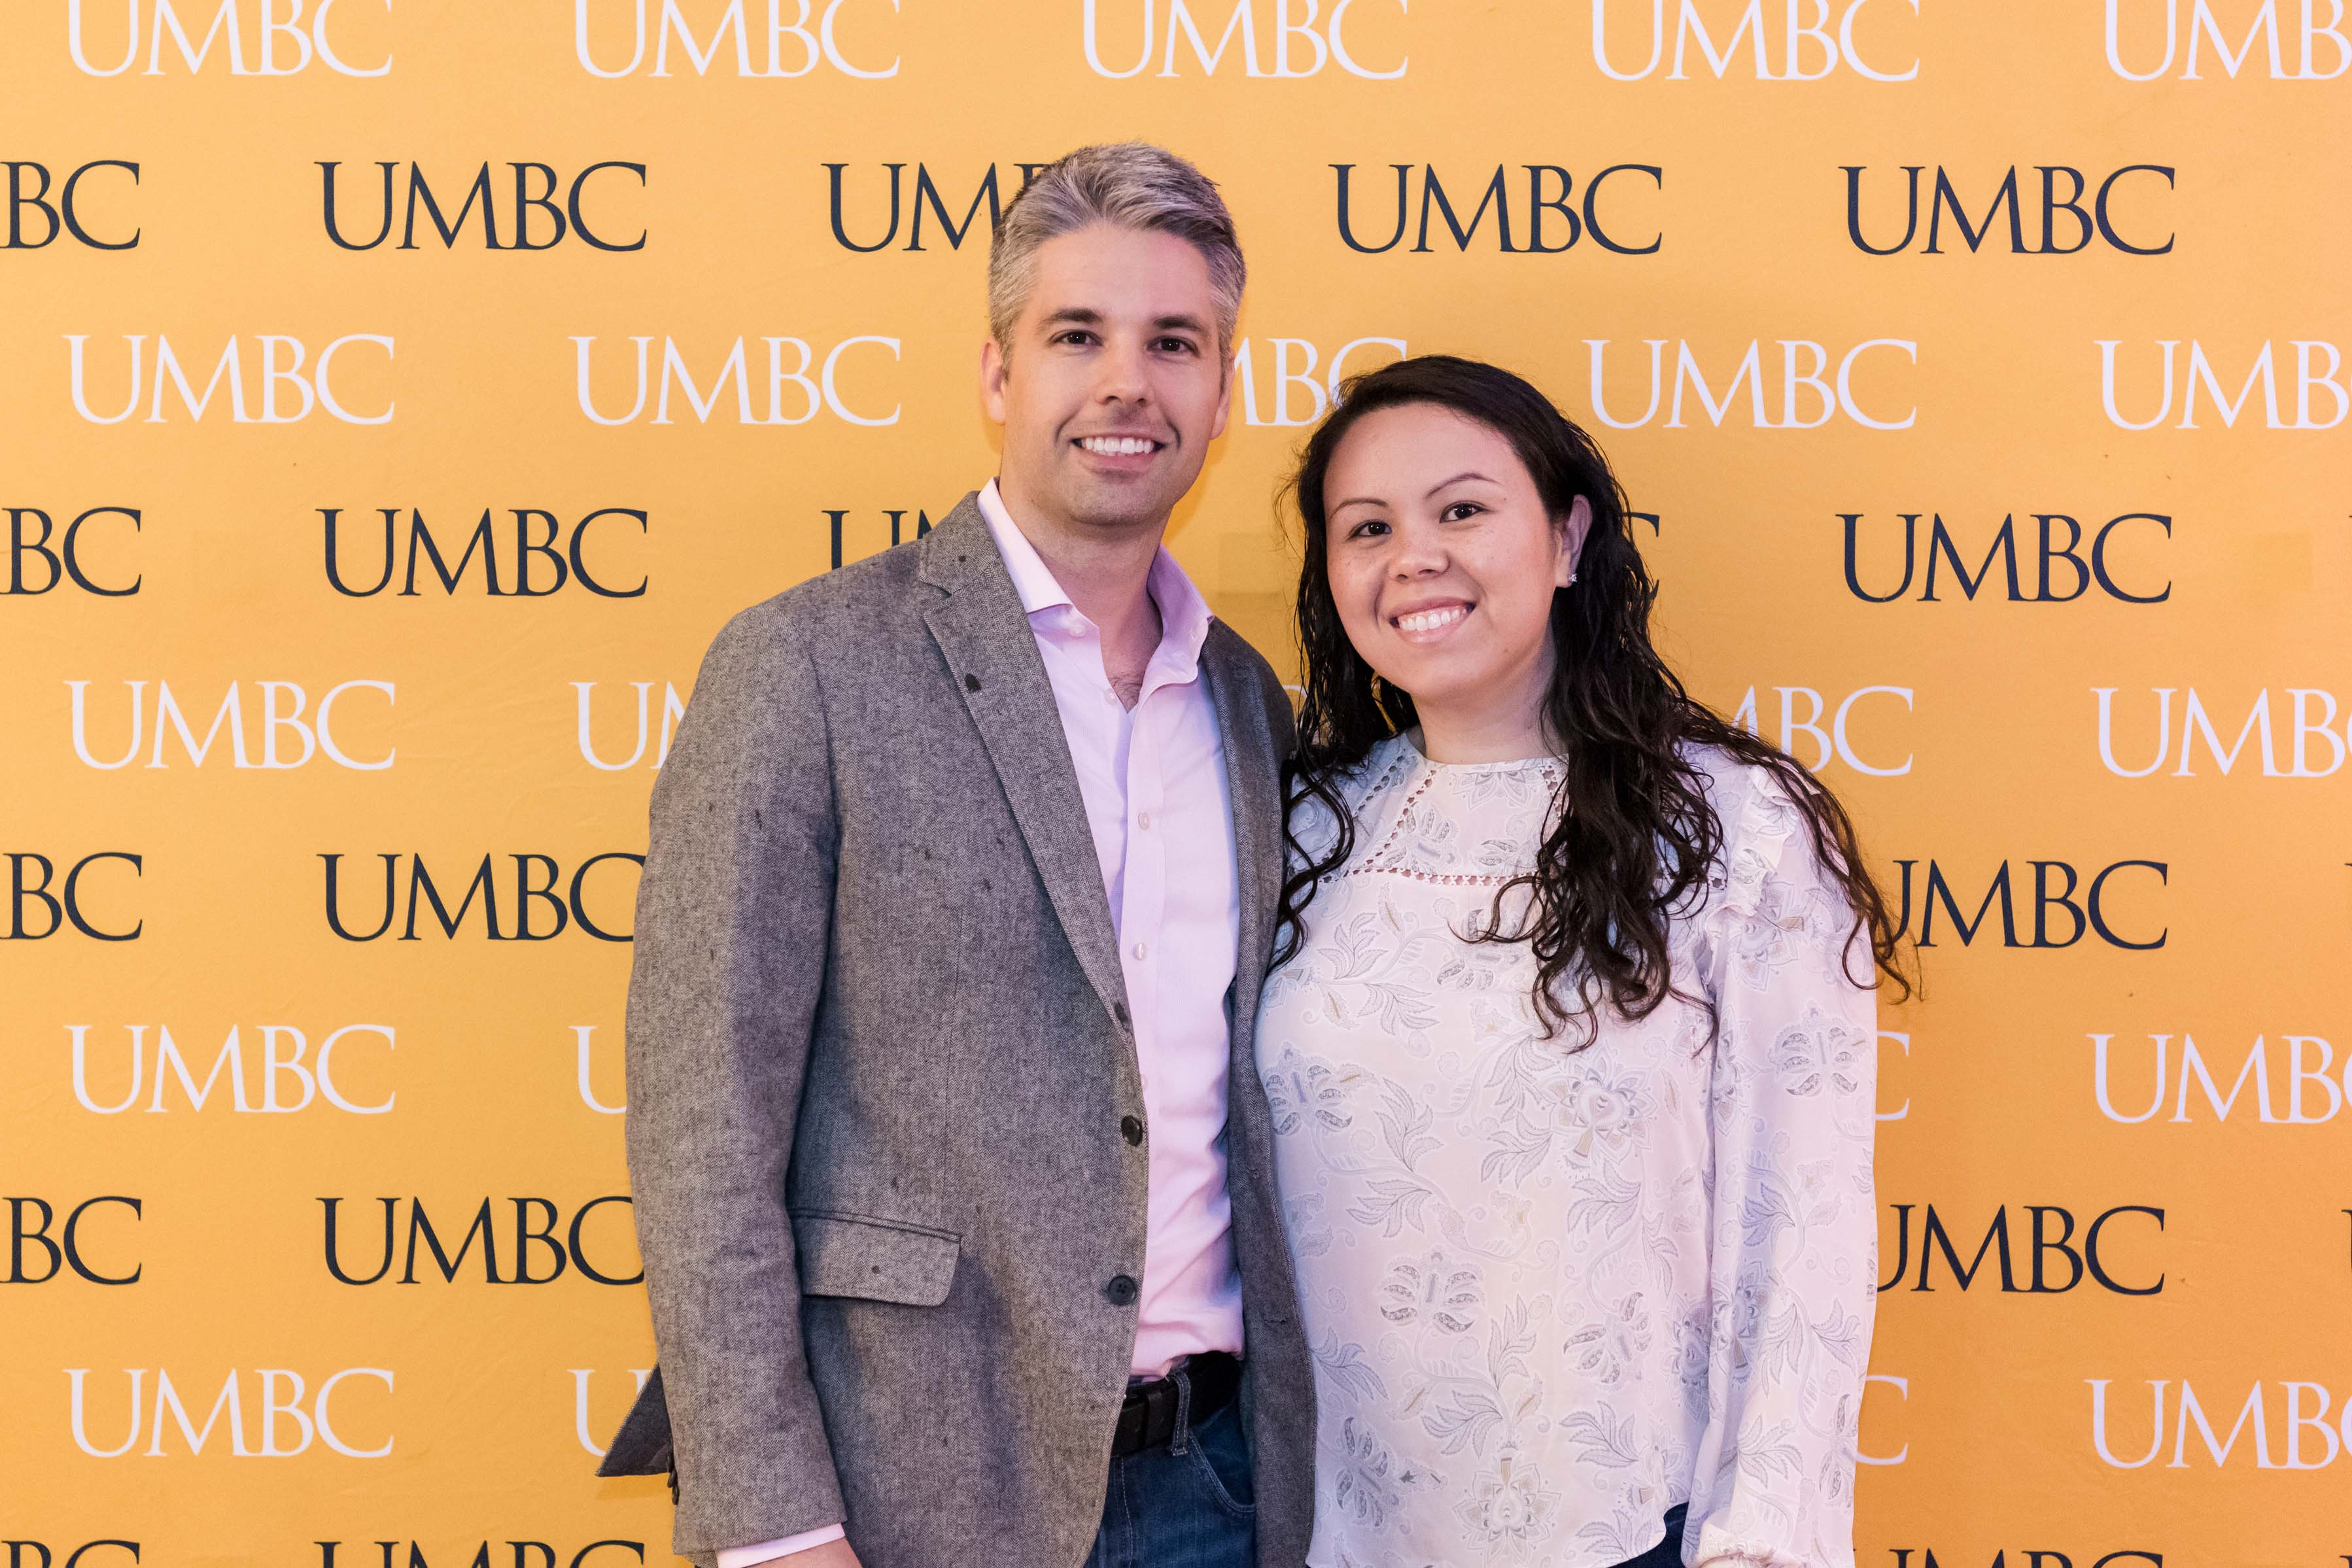 Guy and girl pose at UMBC wall for wine tasting